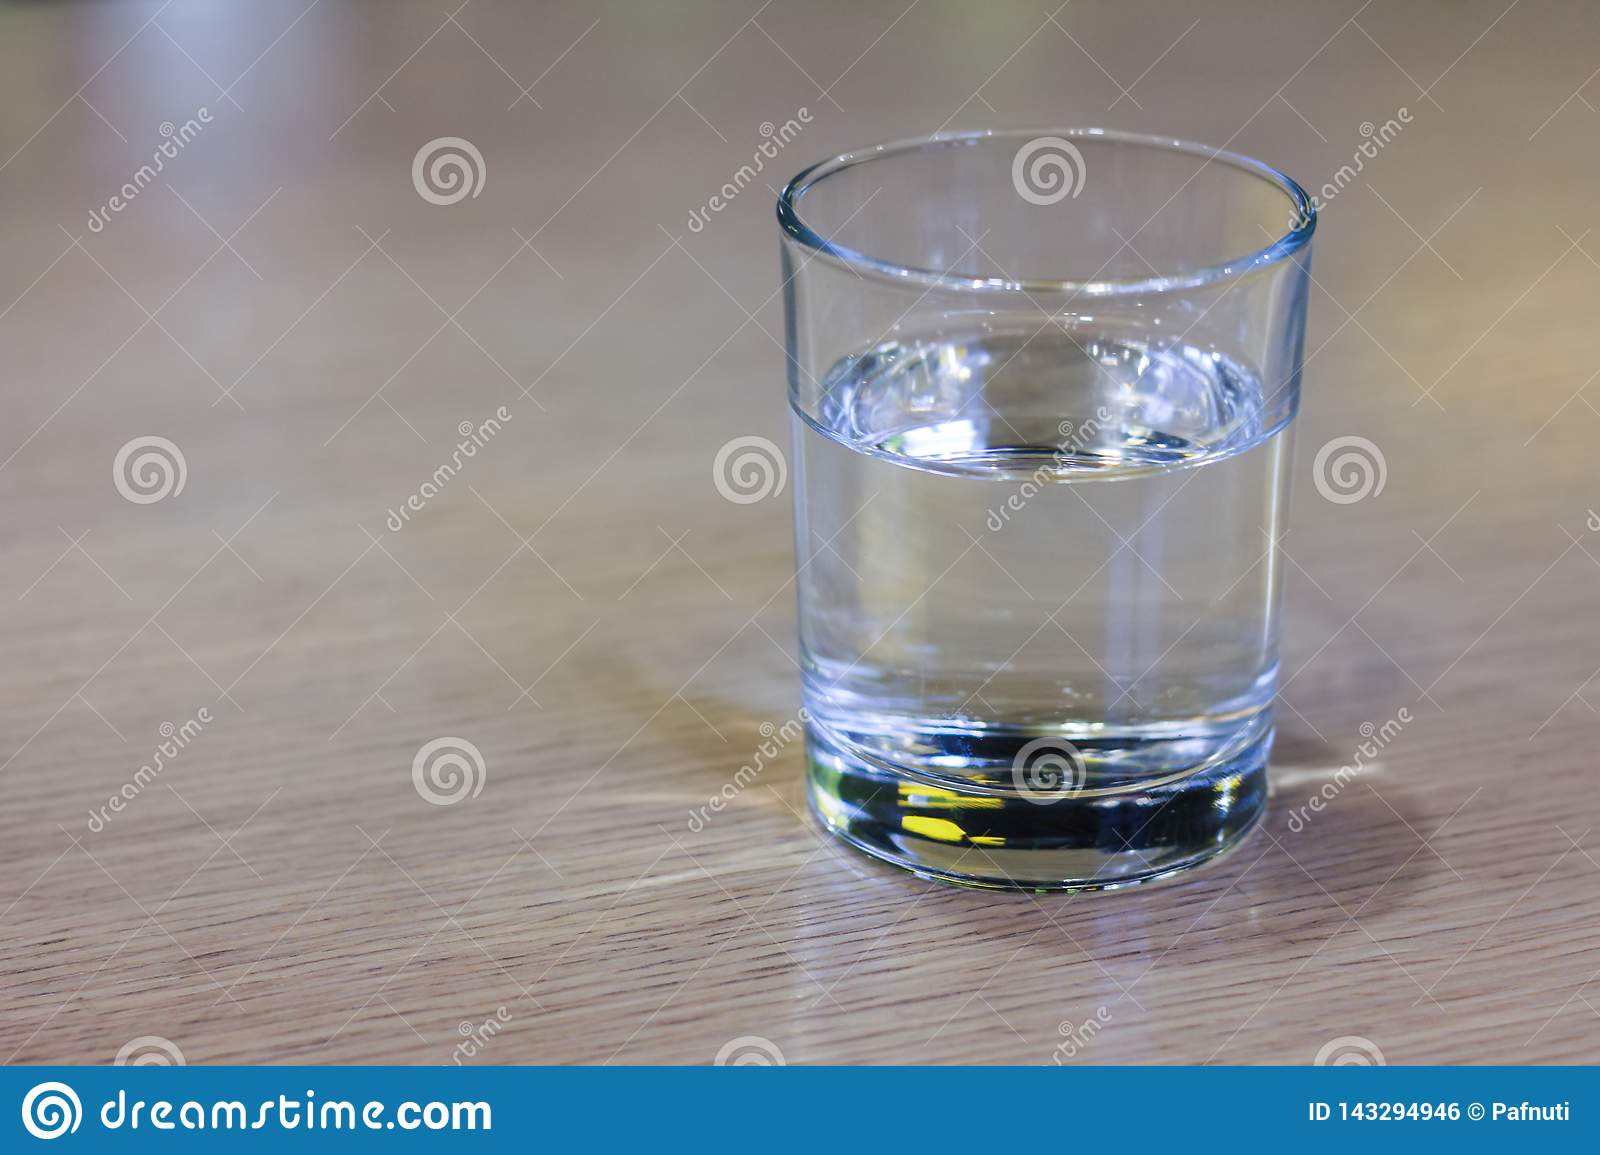 Glass of clear water on wooden table.